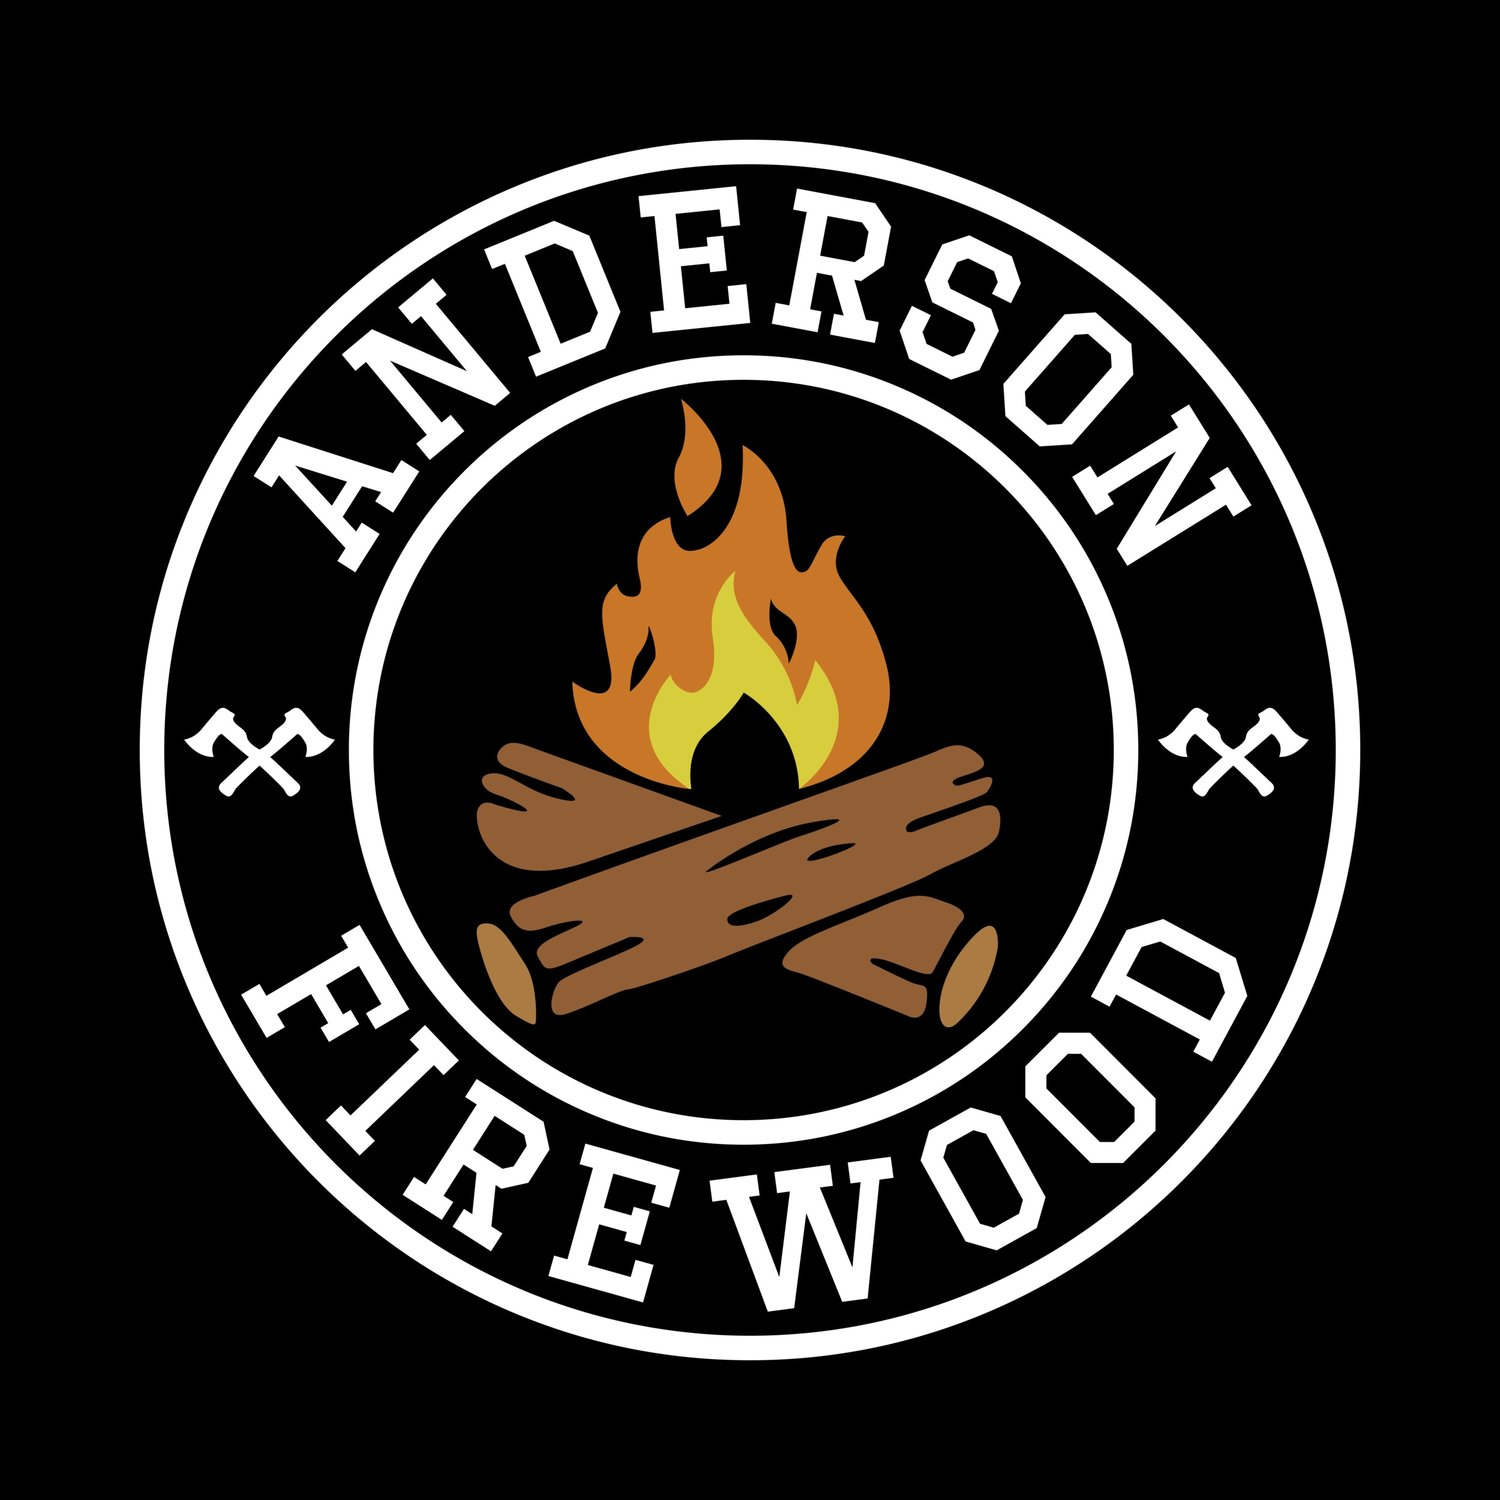 Anderson Firewood Service